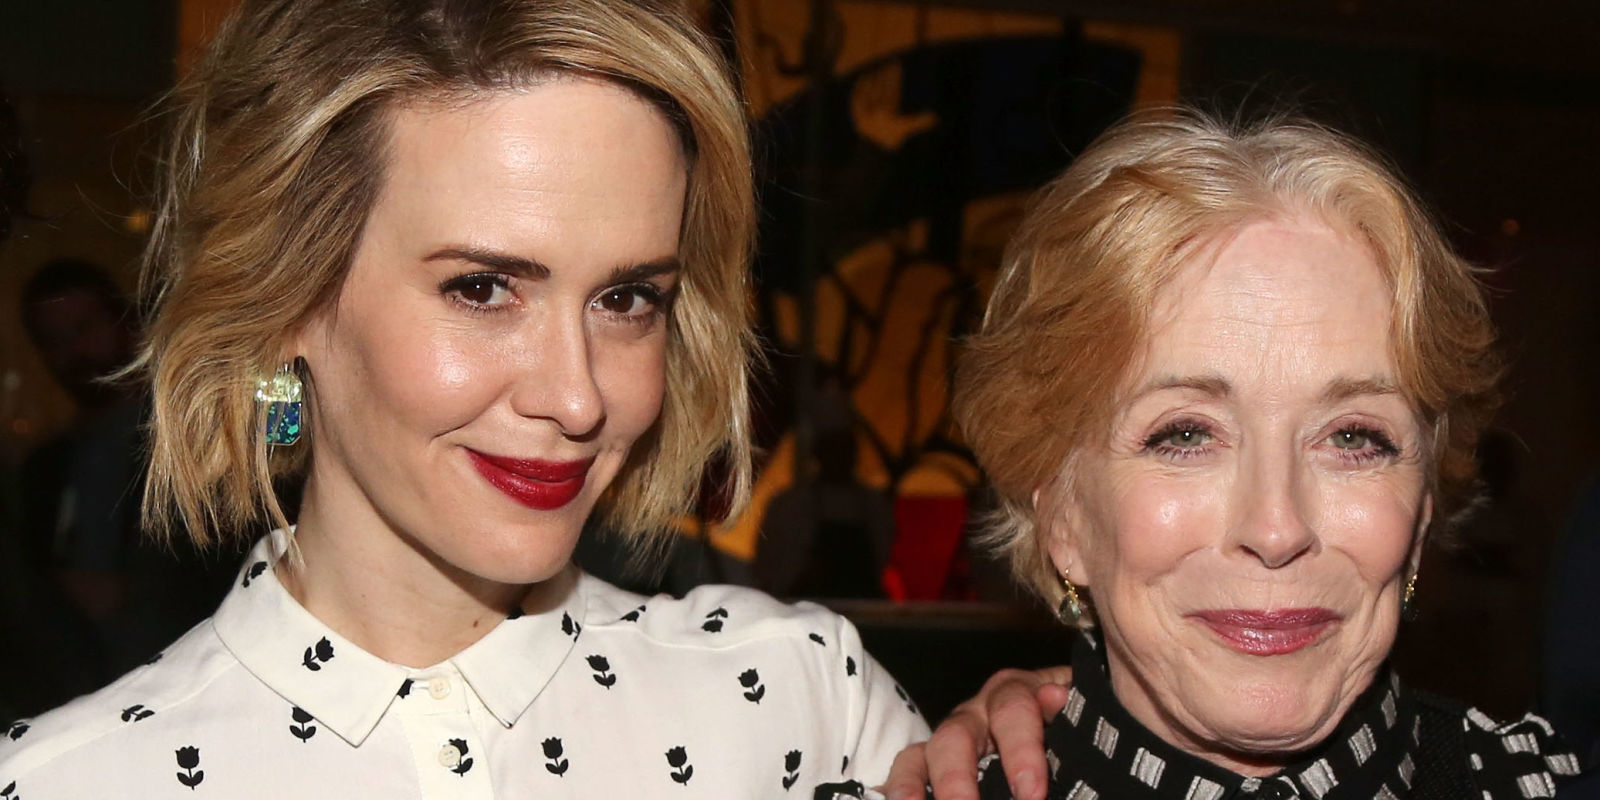 Who is sarah paulson dating